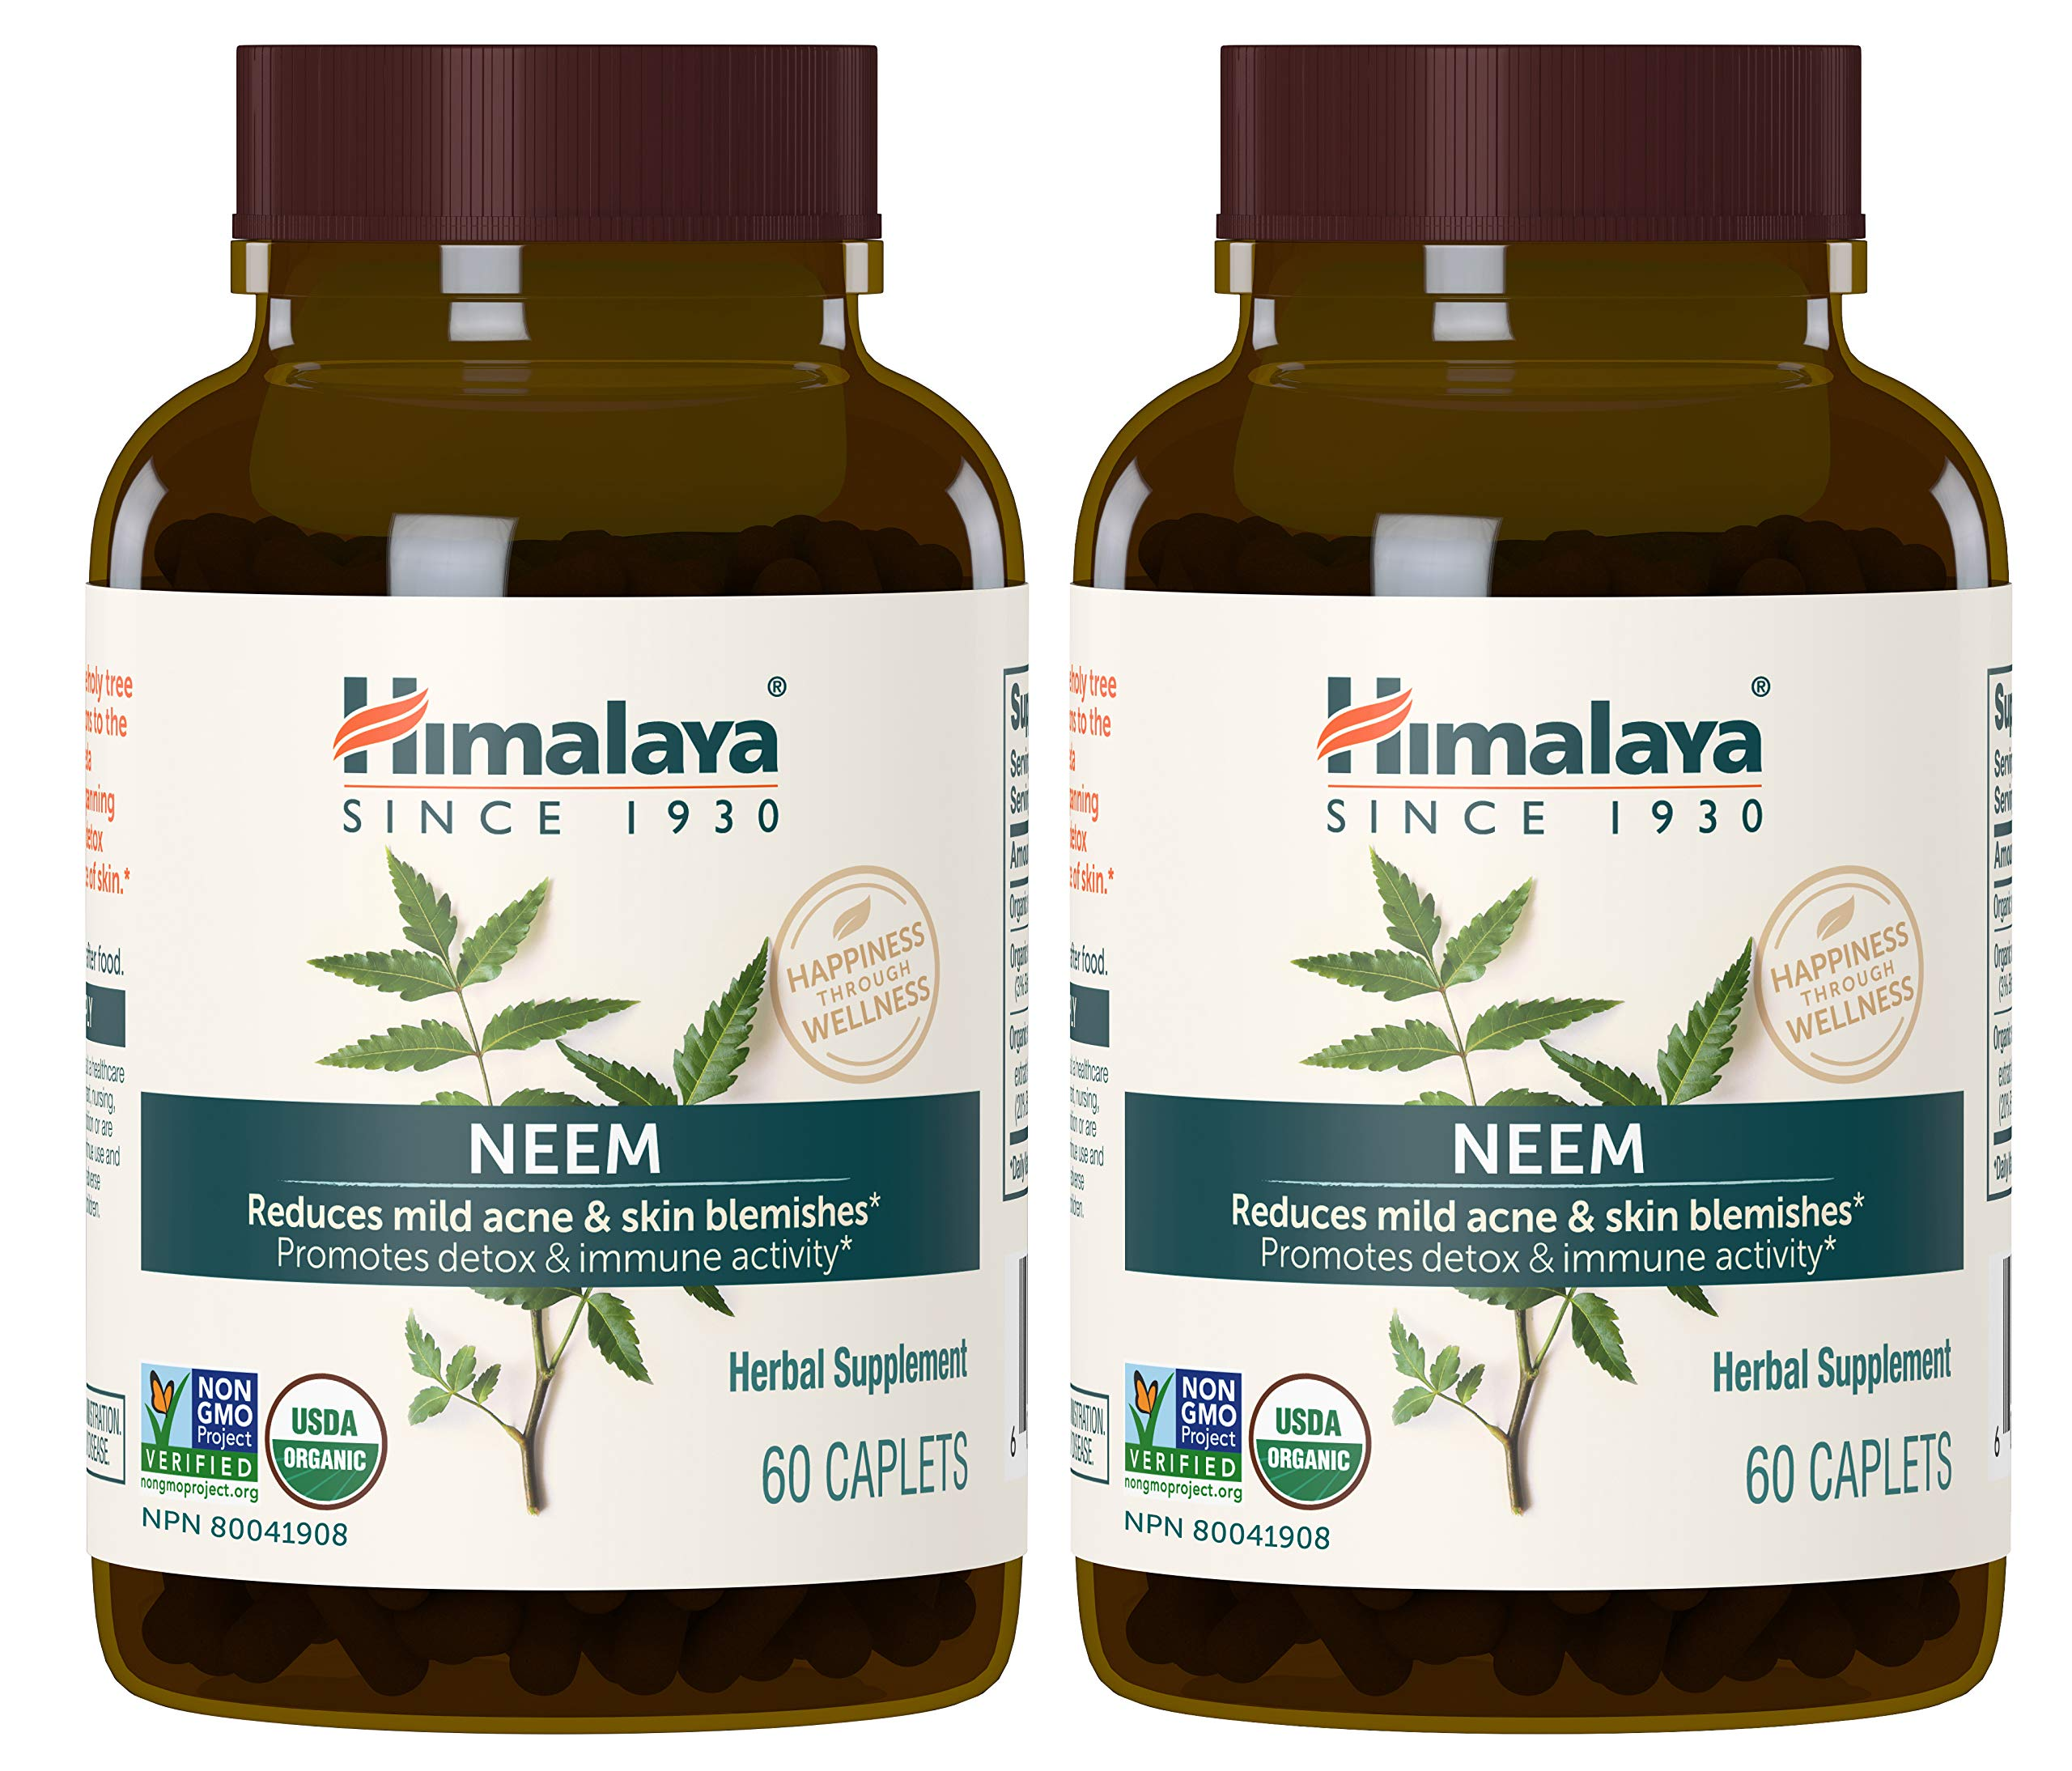 Himalaya Organic Neem (2 Pack) for Mild Acne & Healthy Skin 60 Caplets 600mg